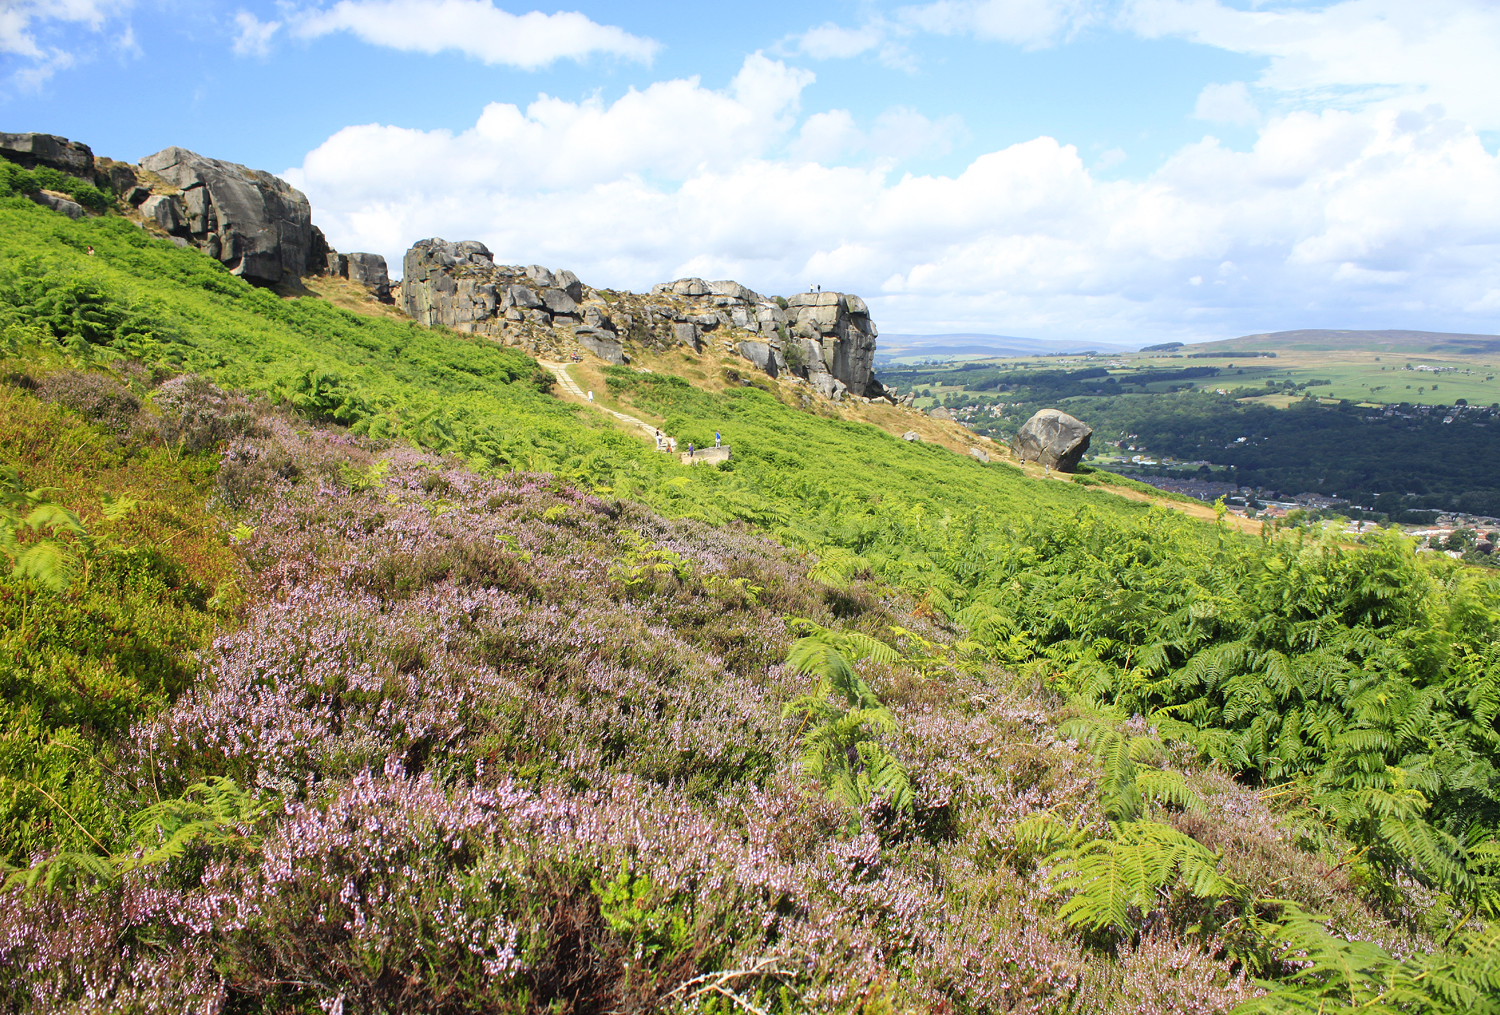 Bradford Telegraph and Argus: The Cow and Calf Rocks on Ilkley Moor, commanding spectacular views